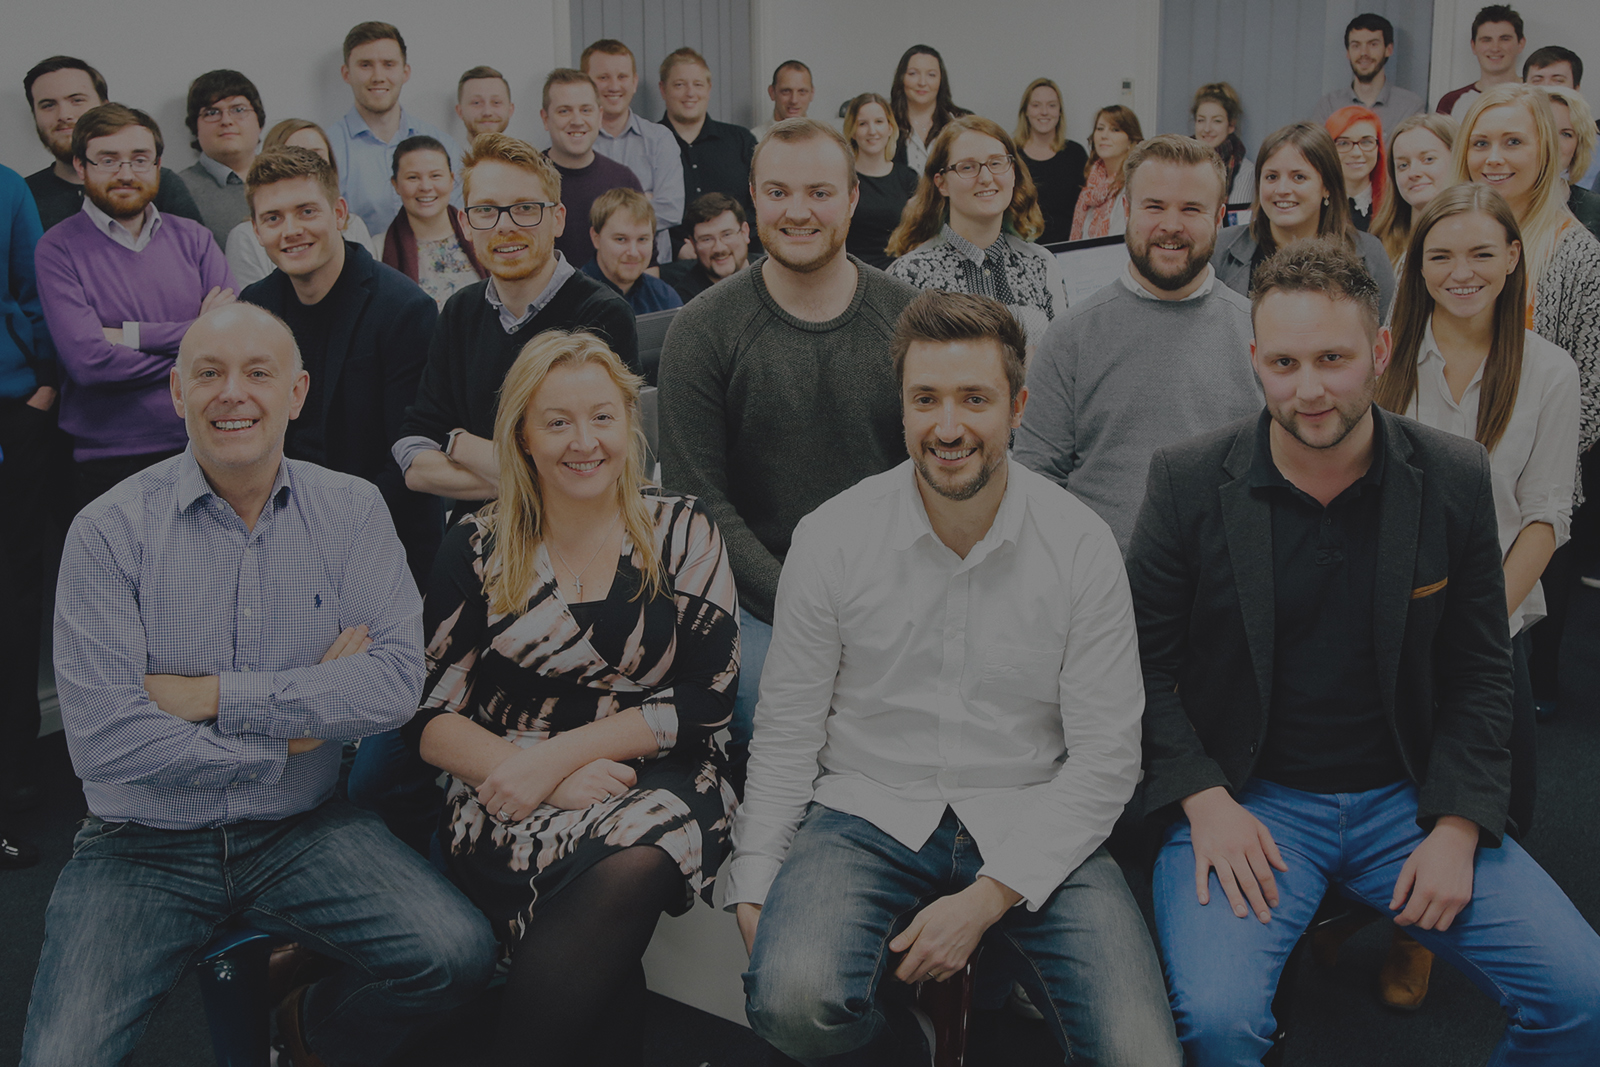 The Purplex Marketing Team